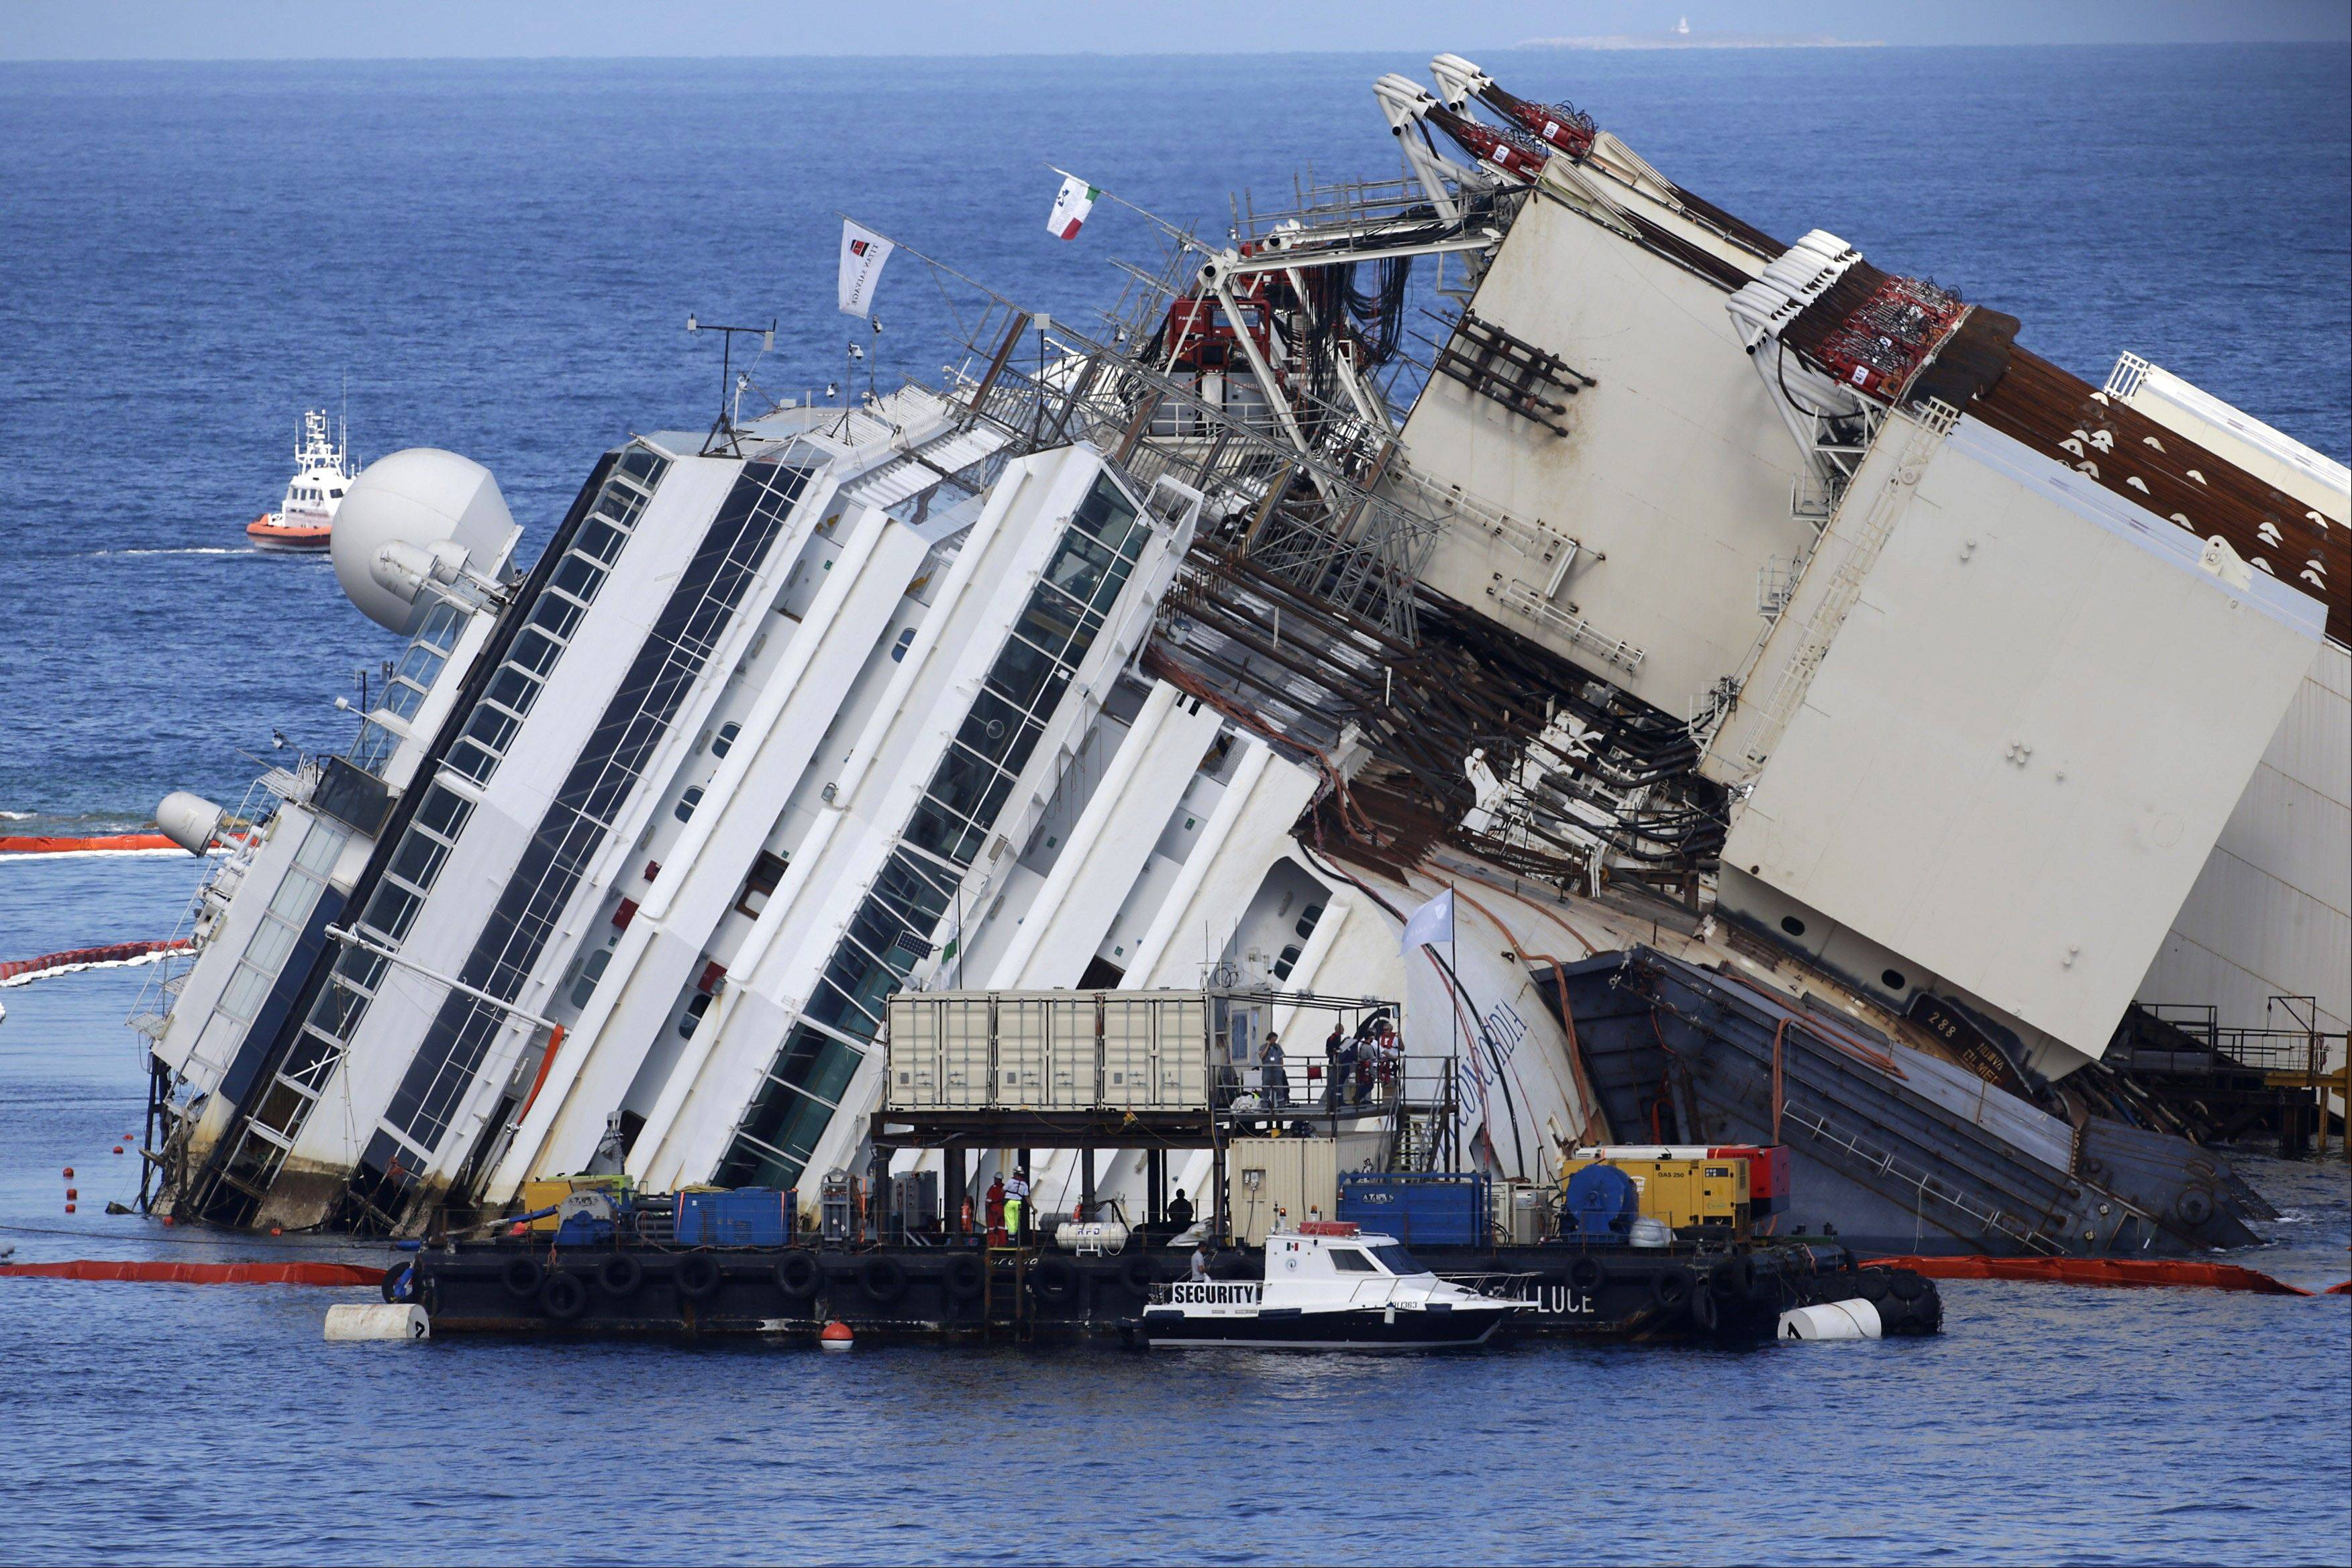 The Costa Concordia ship lies on its side on the Tuscan Island of Giglio, Italy, early Monday morning. An internation